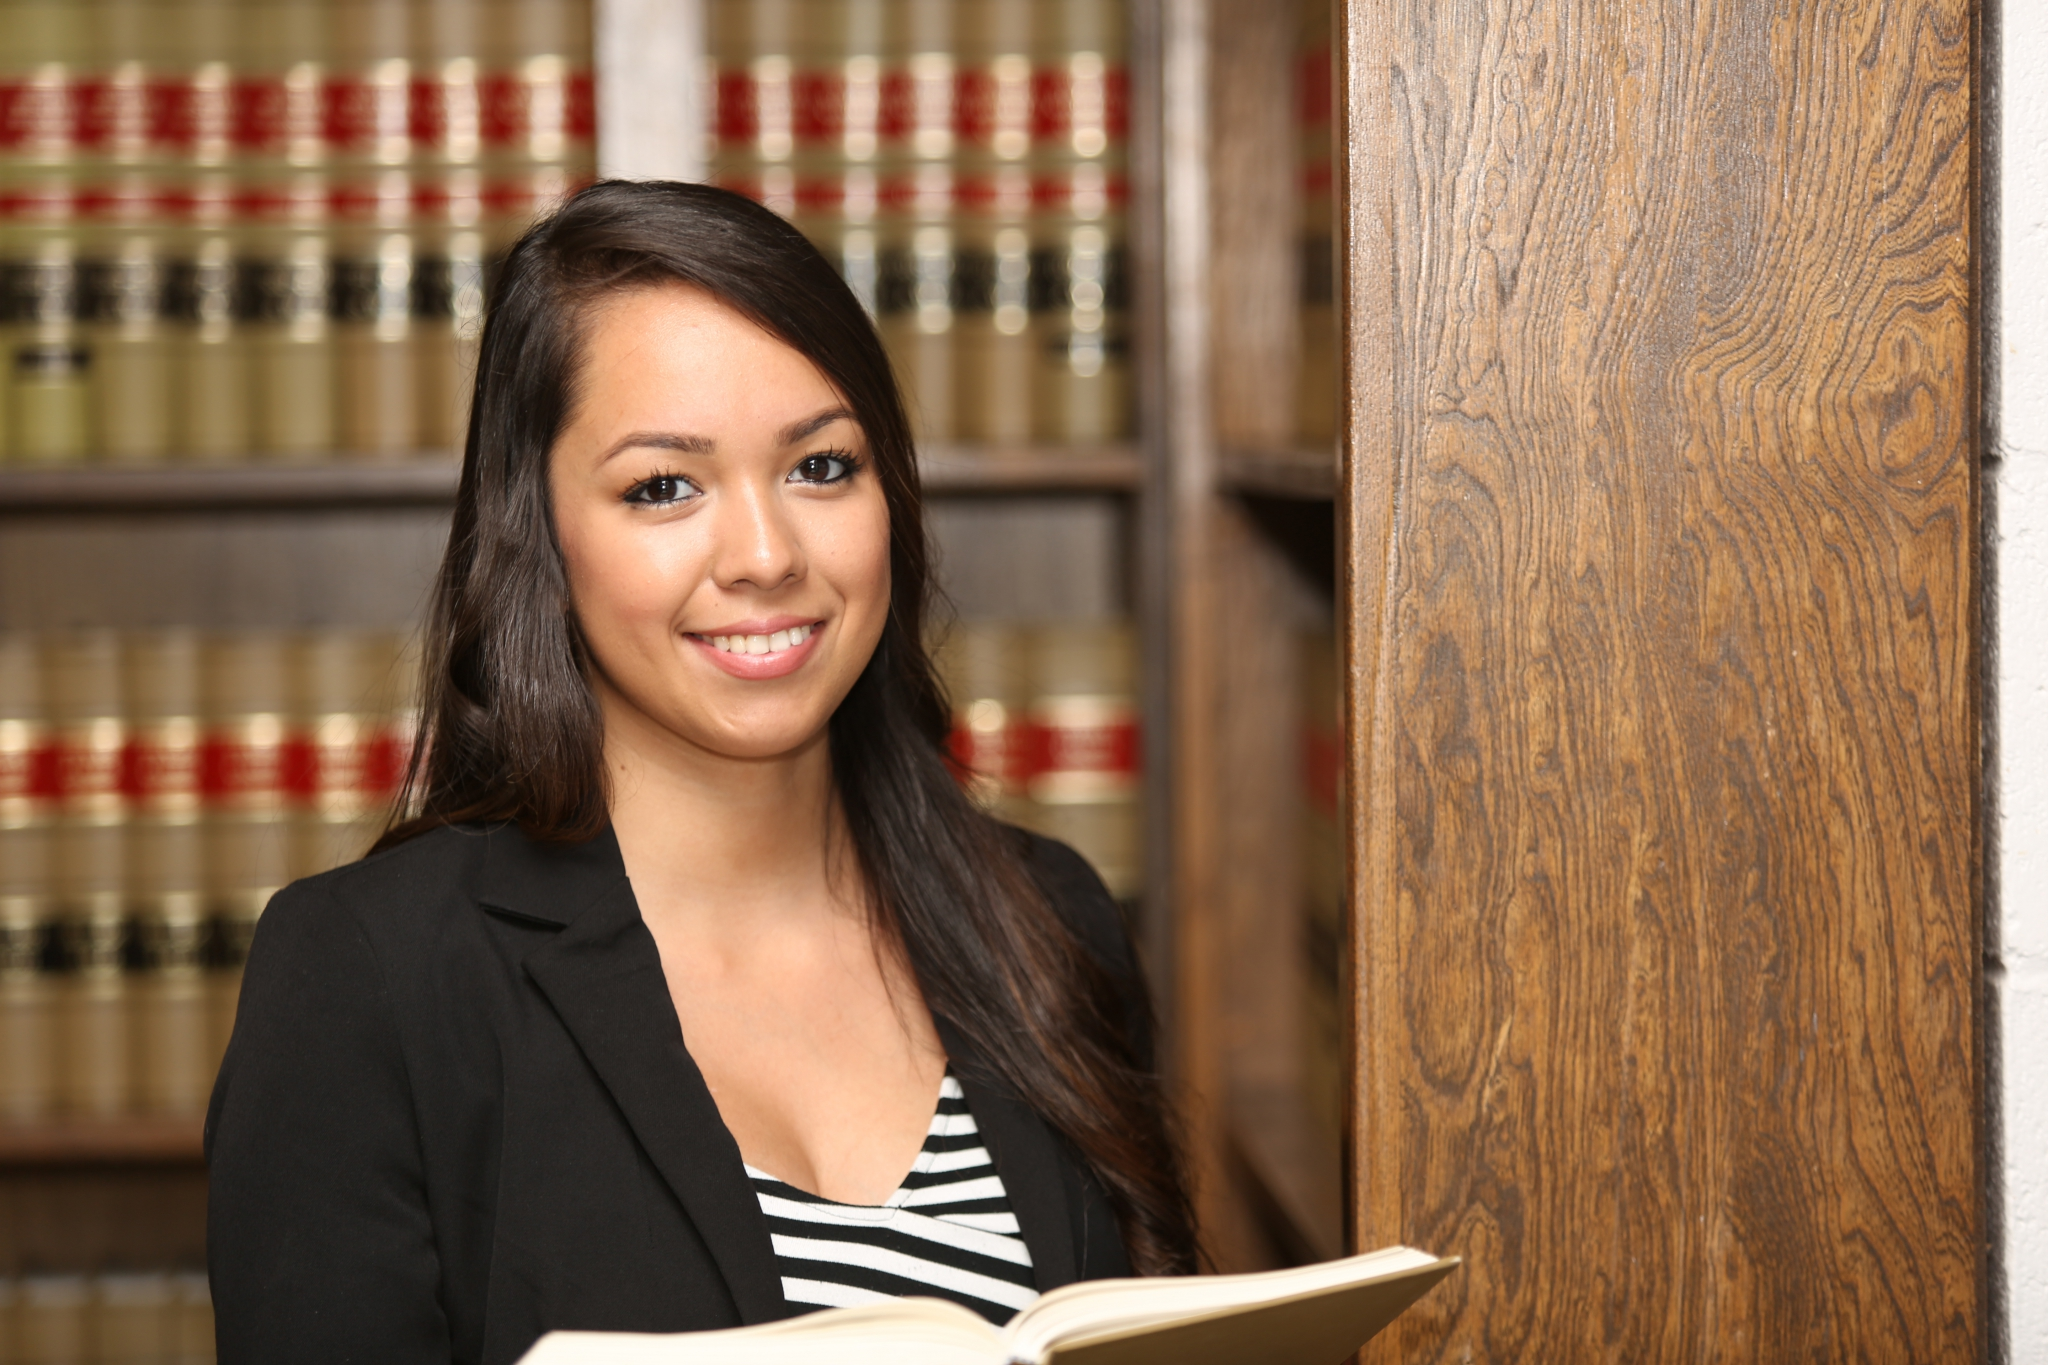 Young Female Hispanic Lawyer in Law Library